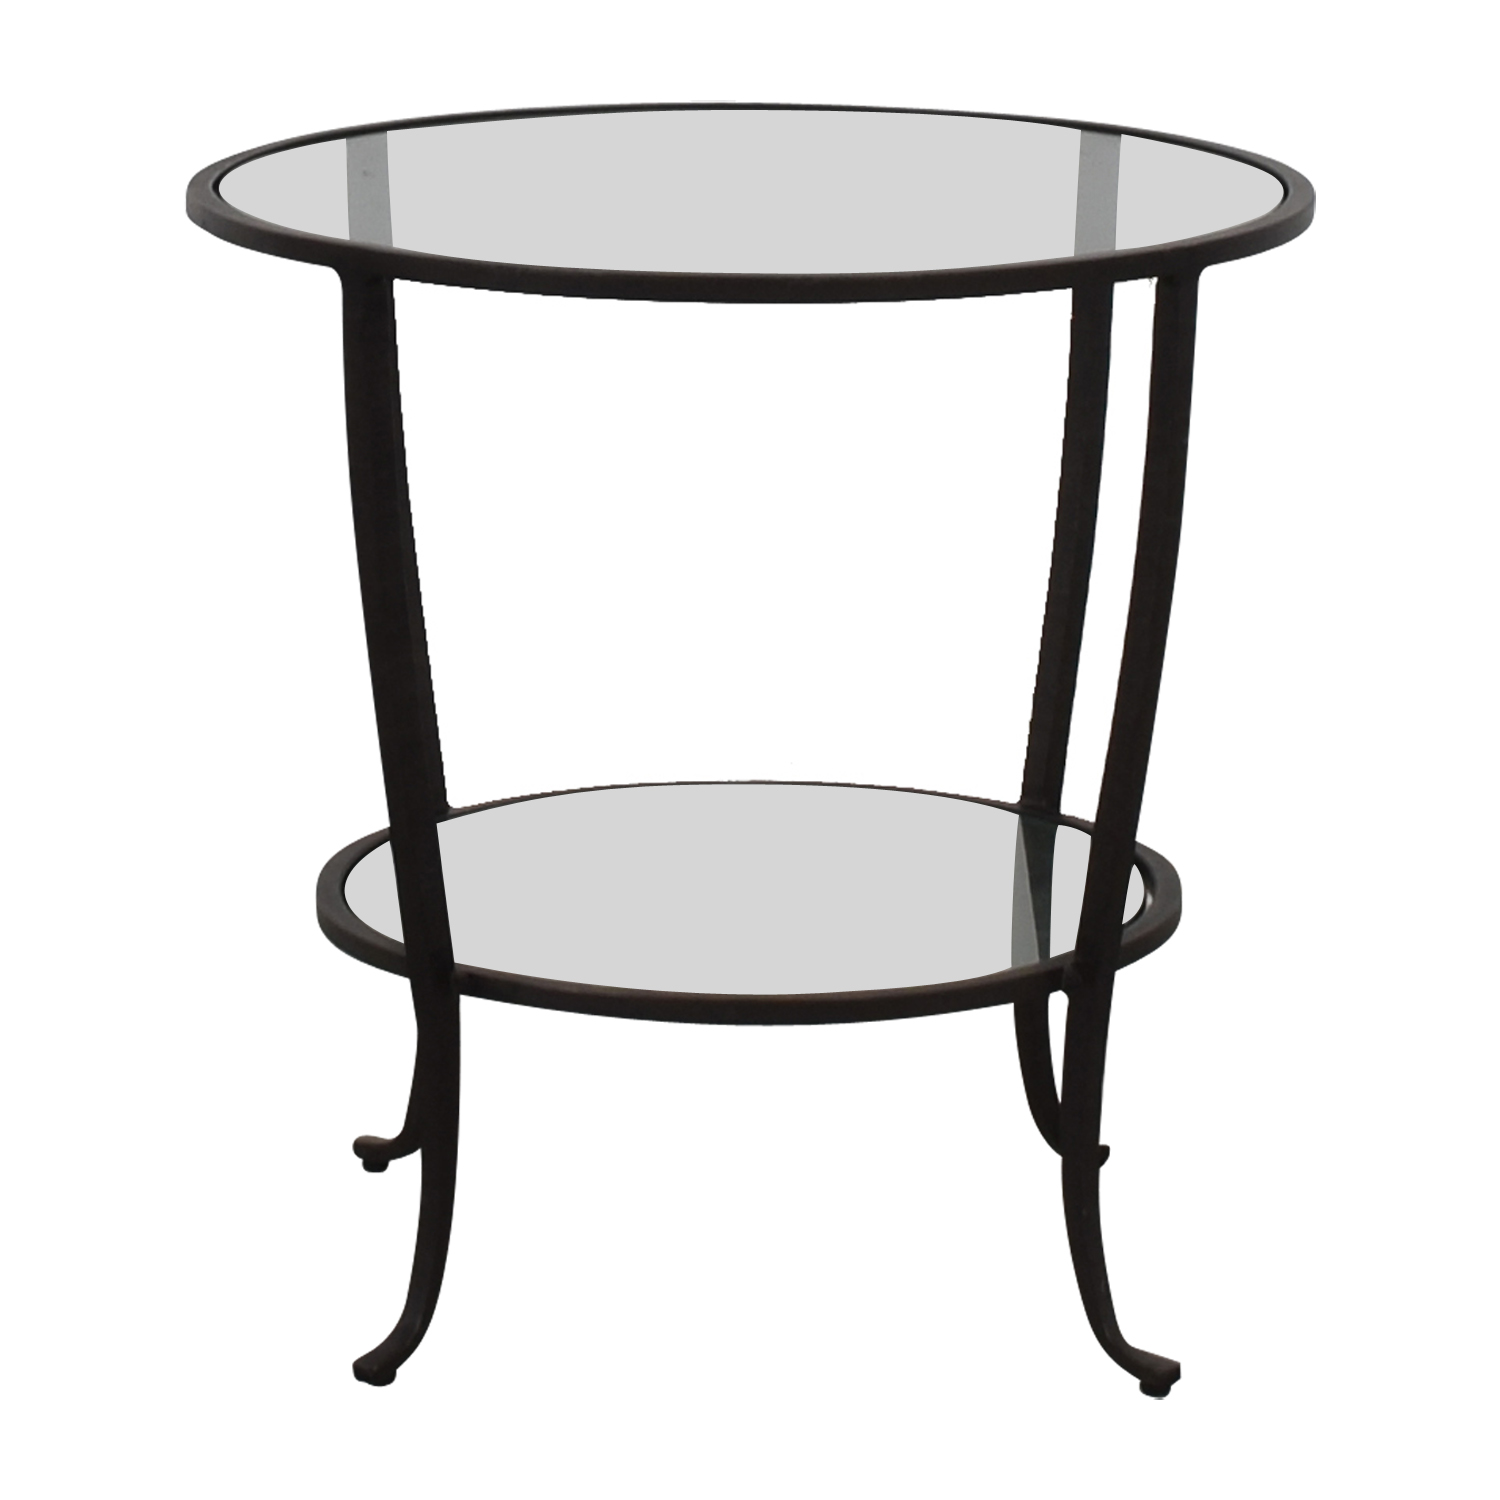 5% OFF - Pottery Barn Pottery Barn Round Metal & Glass Table / Tables